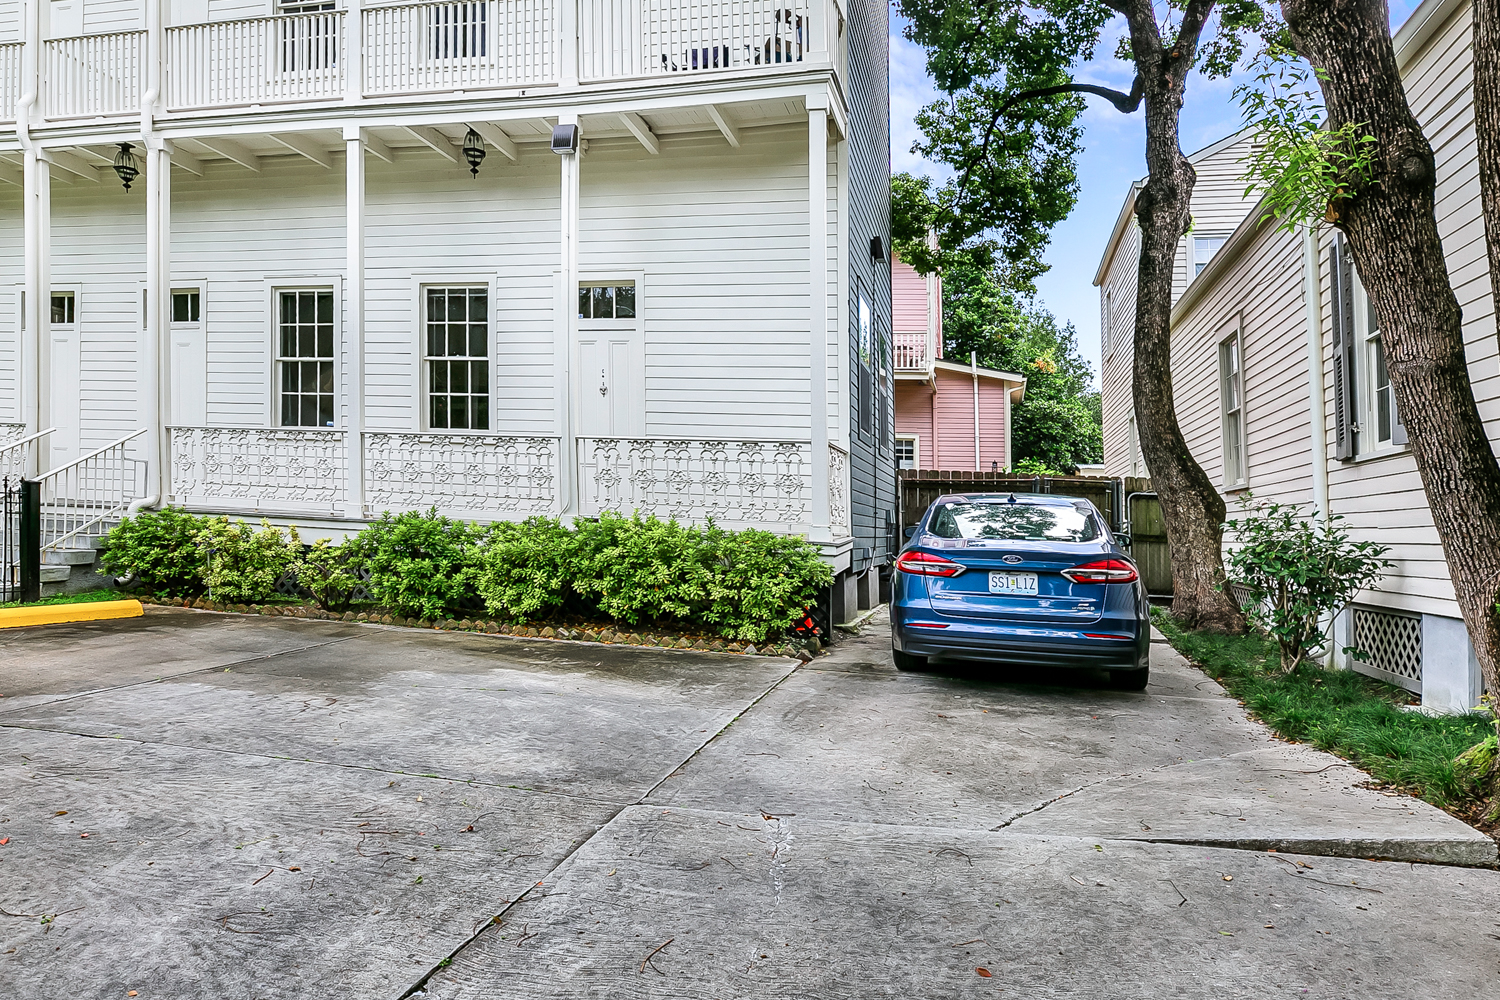 Garden District, Apartment, 1 beds, 1.0 baths, $2800 per month New Orleans Rental - devie image_14